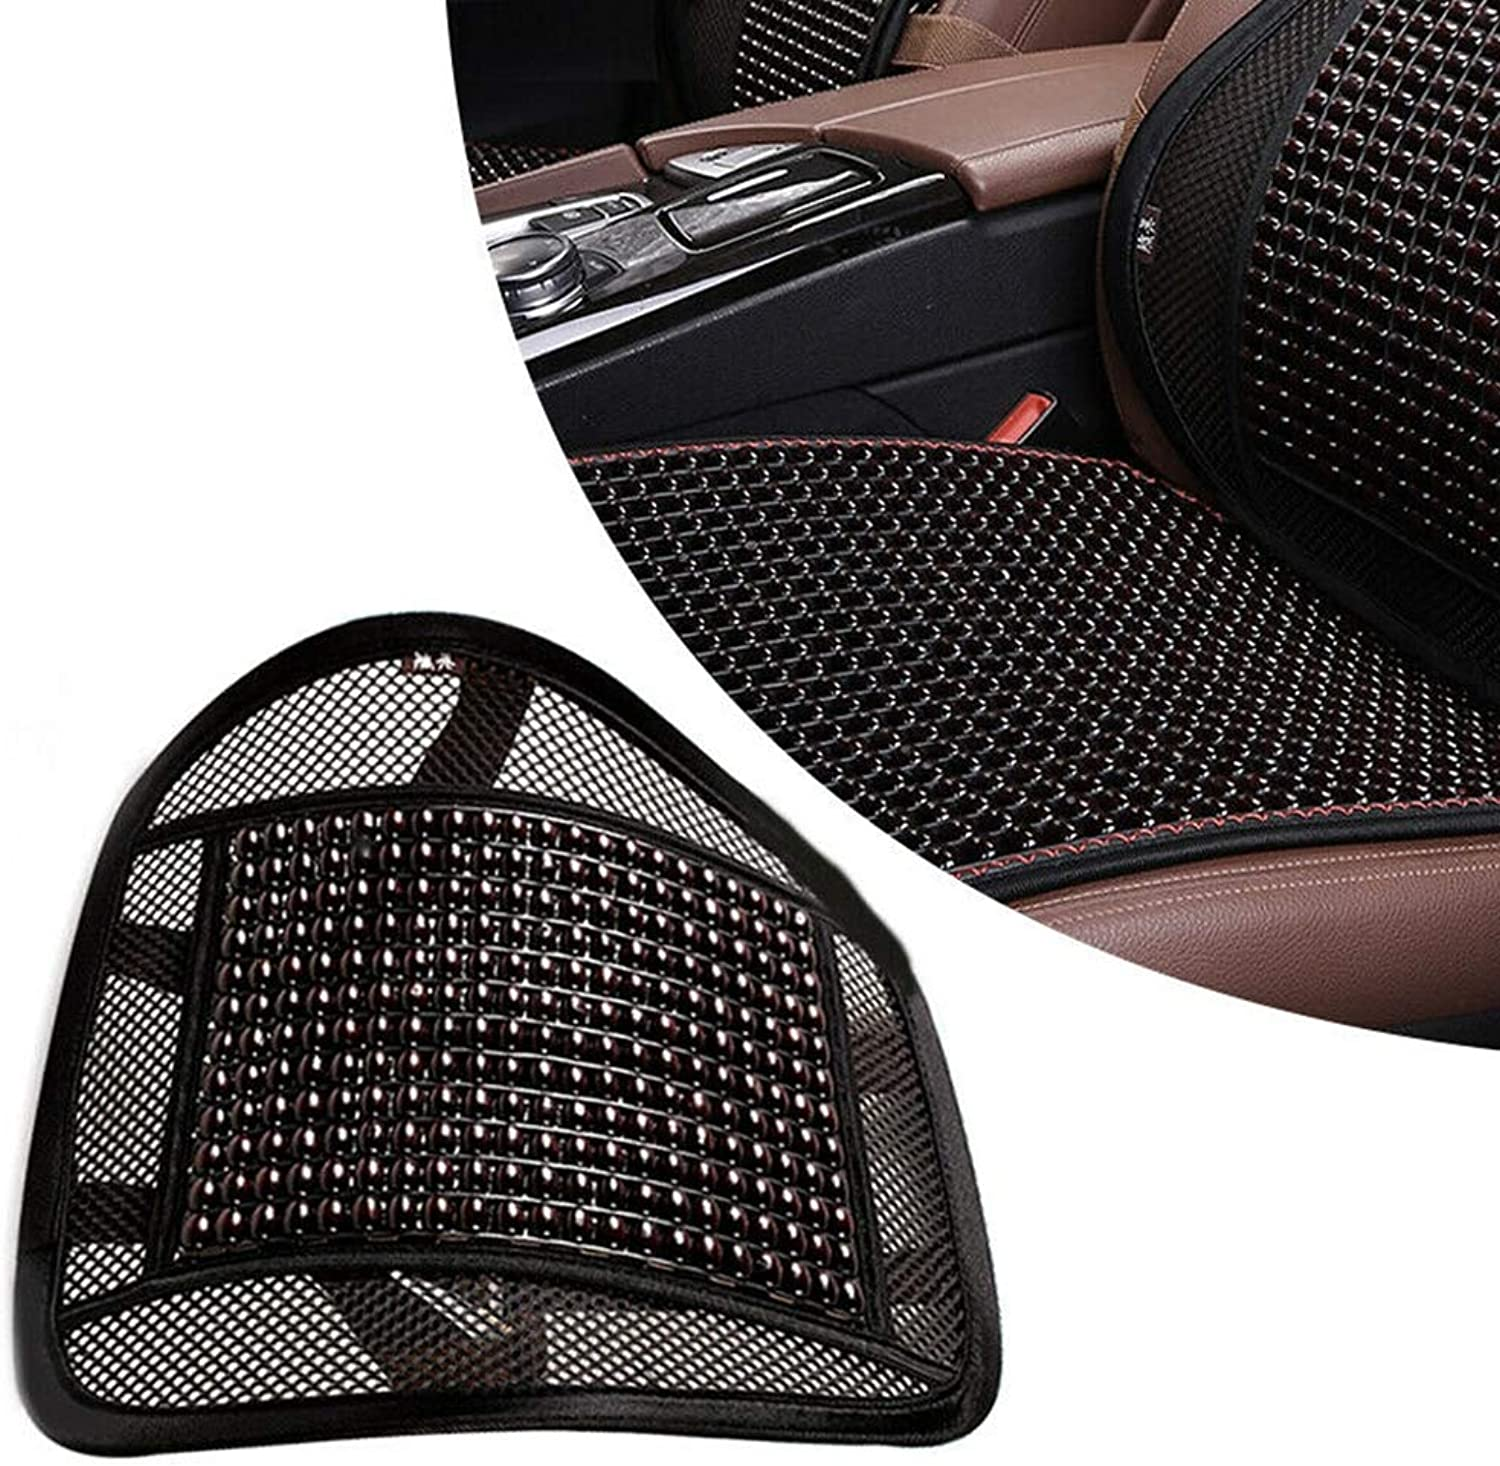 Waist Support, Lumbar Cushion with Massage Beads, Seat Back Support for Office Chair Lumbar Support for Back Pain Relief Car Seat